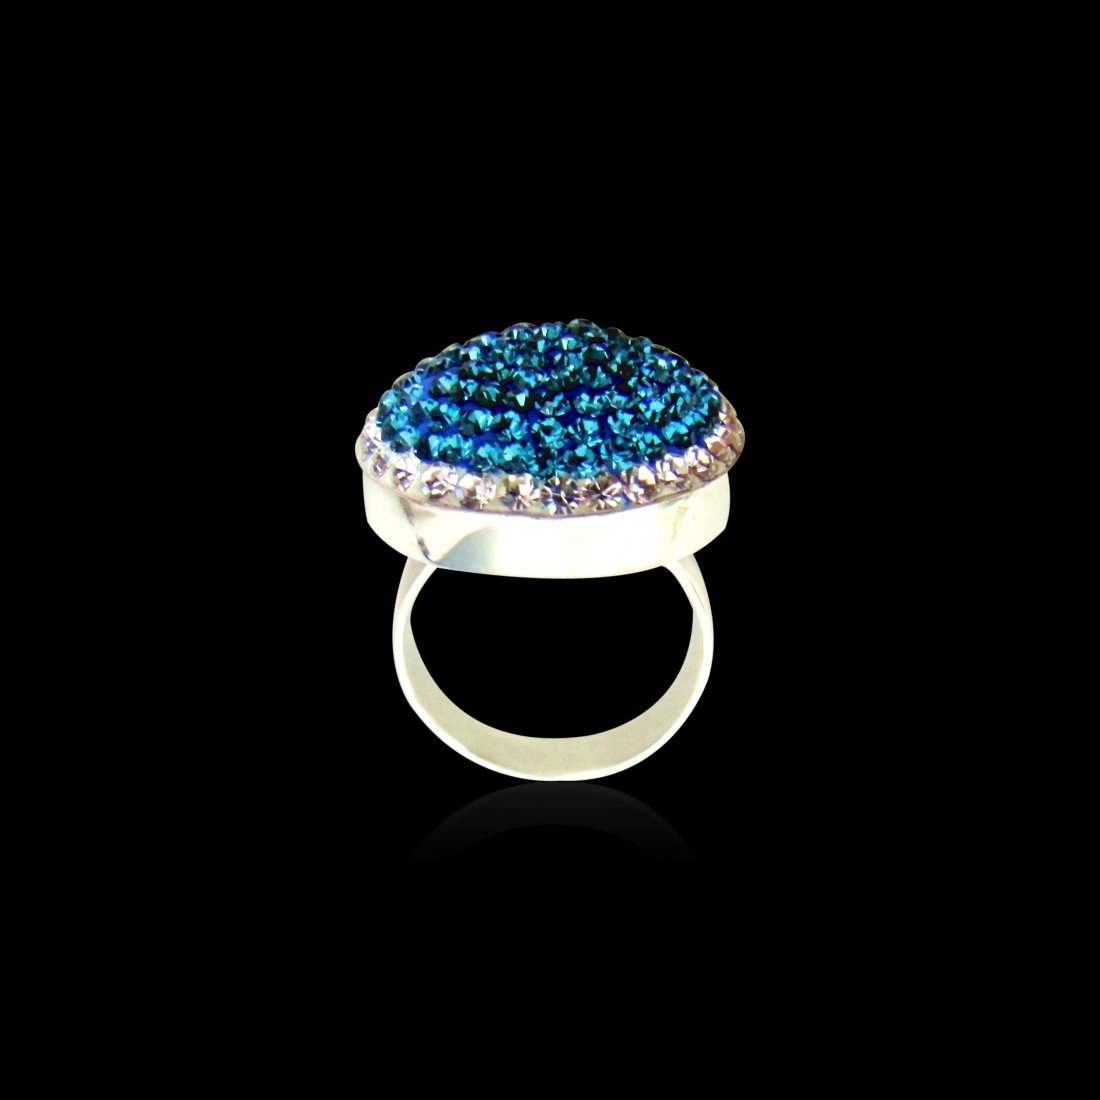 A Zircon & Colored Stones Sterling Silver Ring